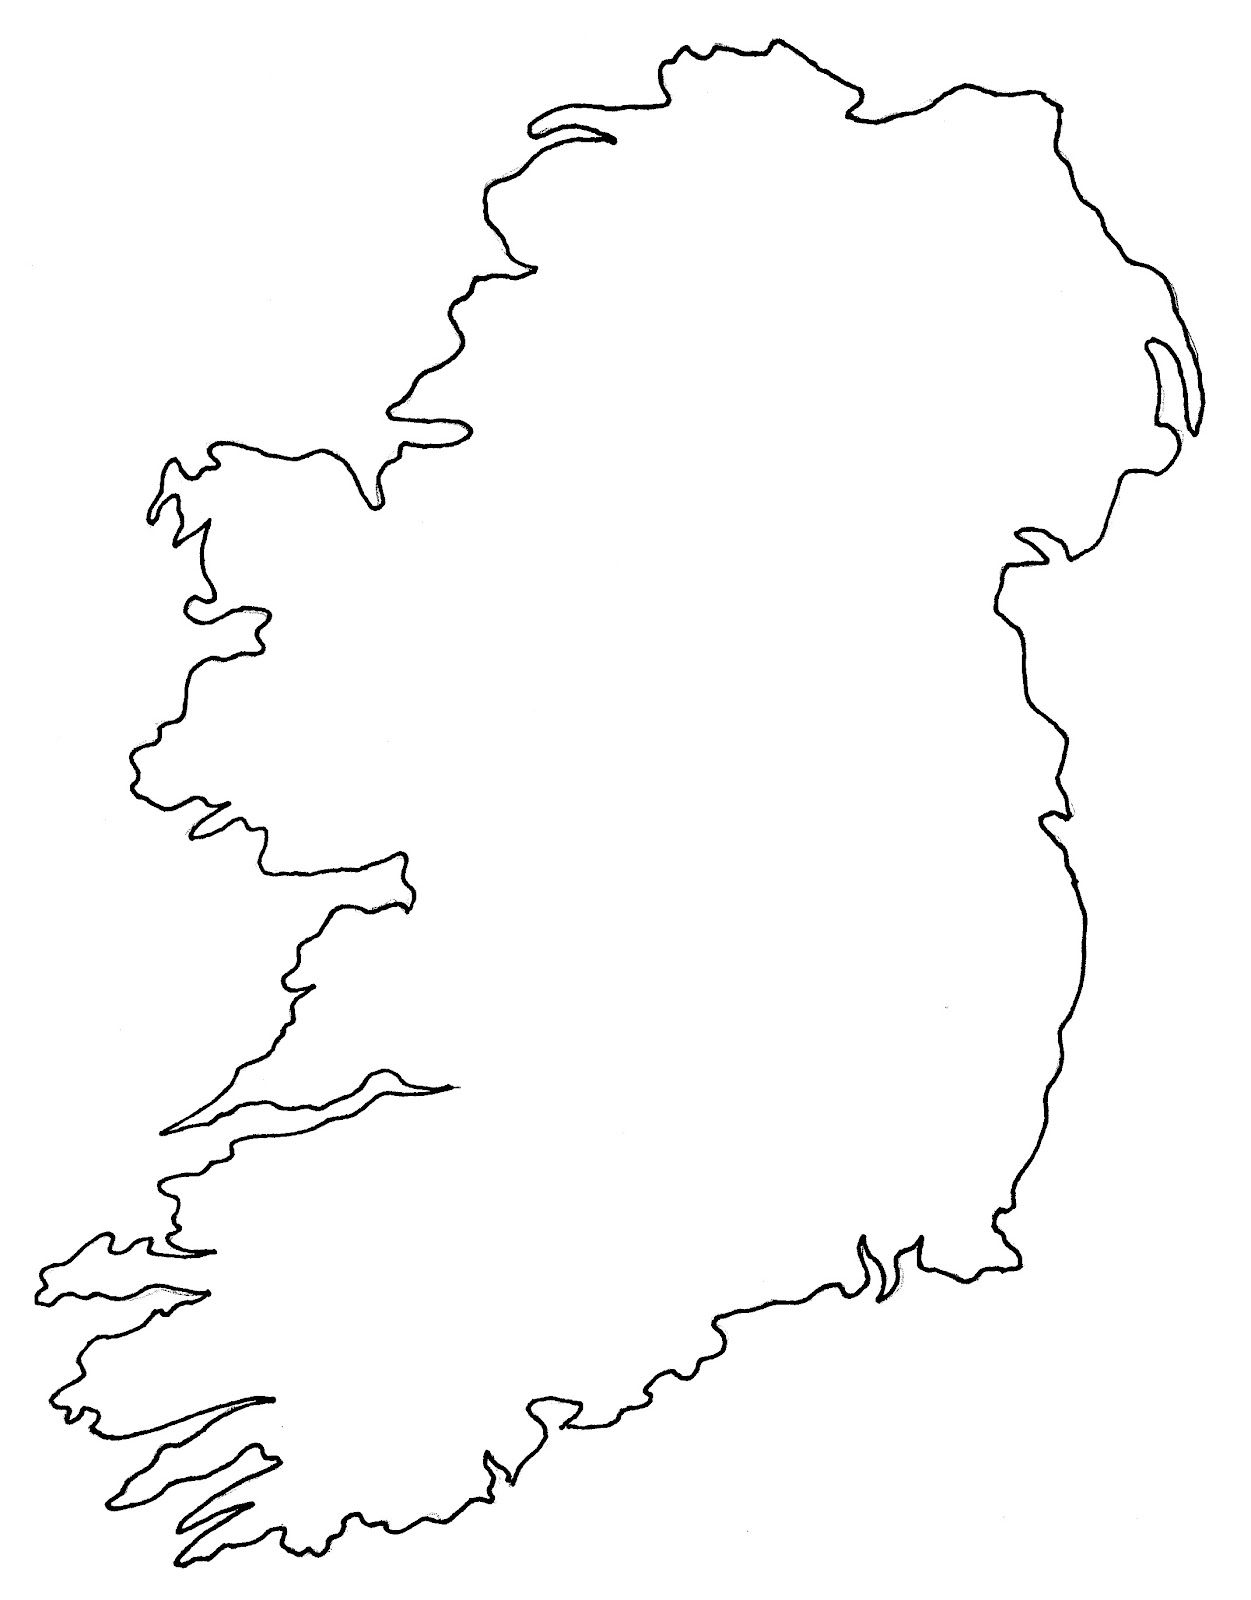 Outline Of Ireland Map